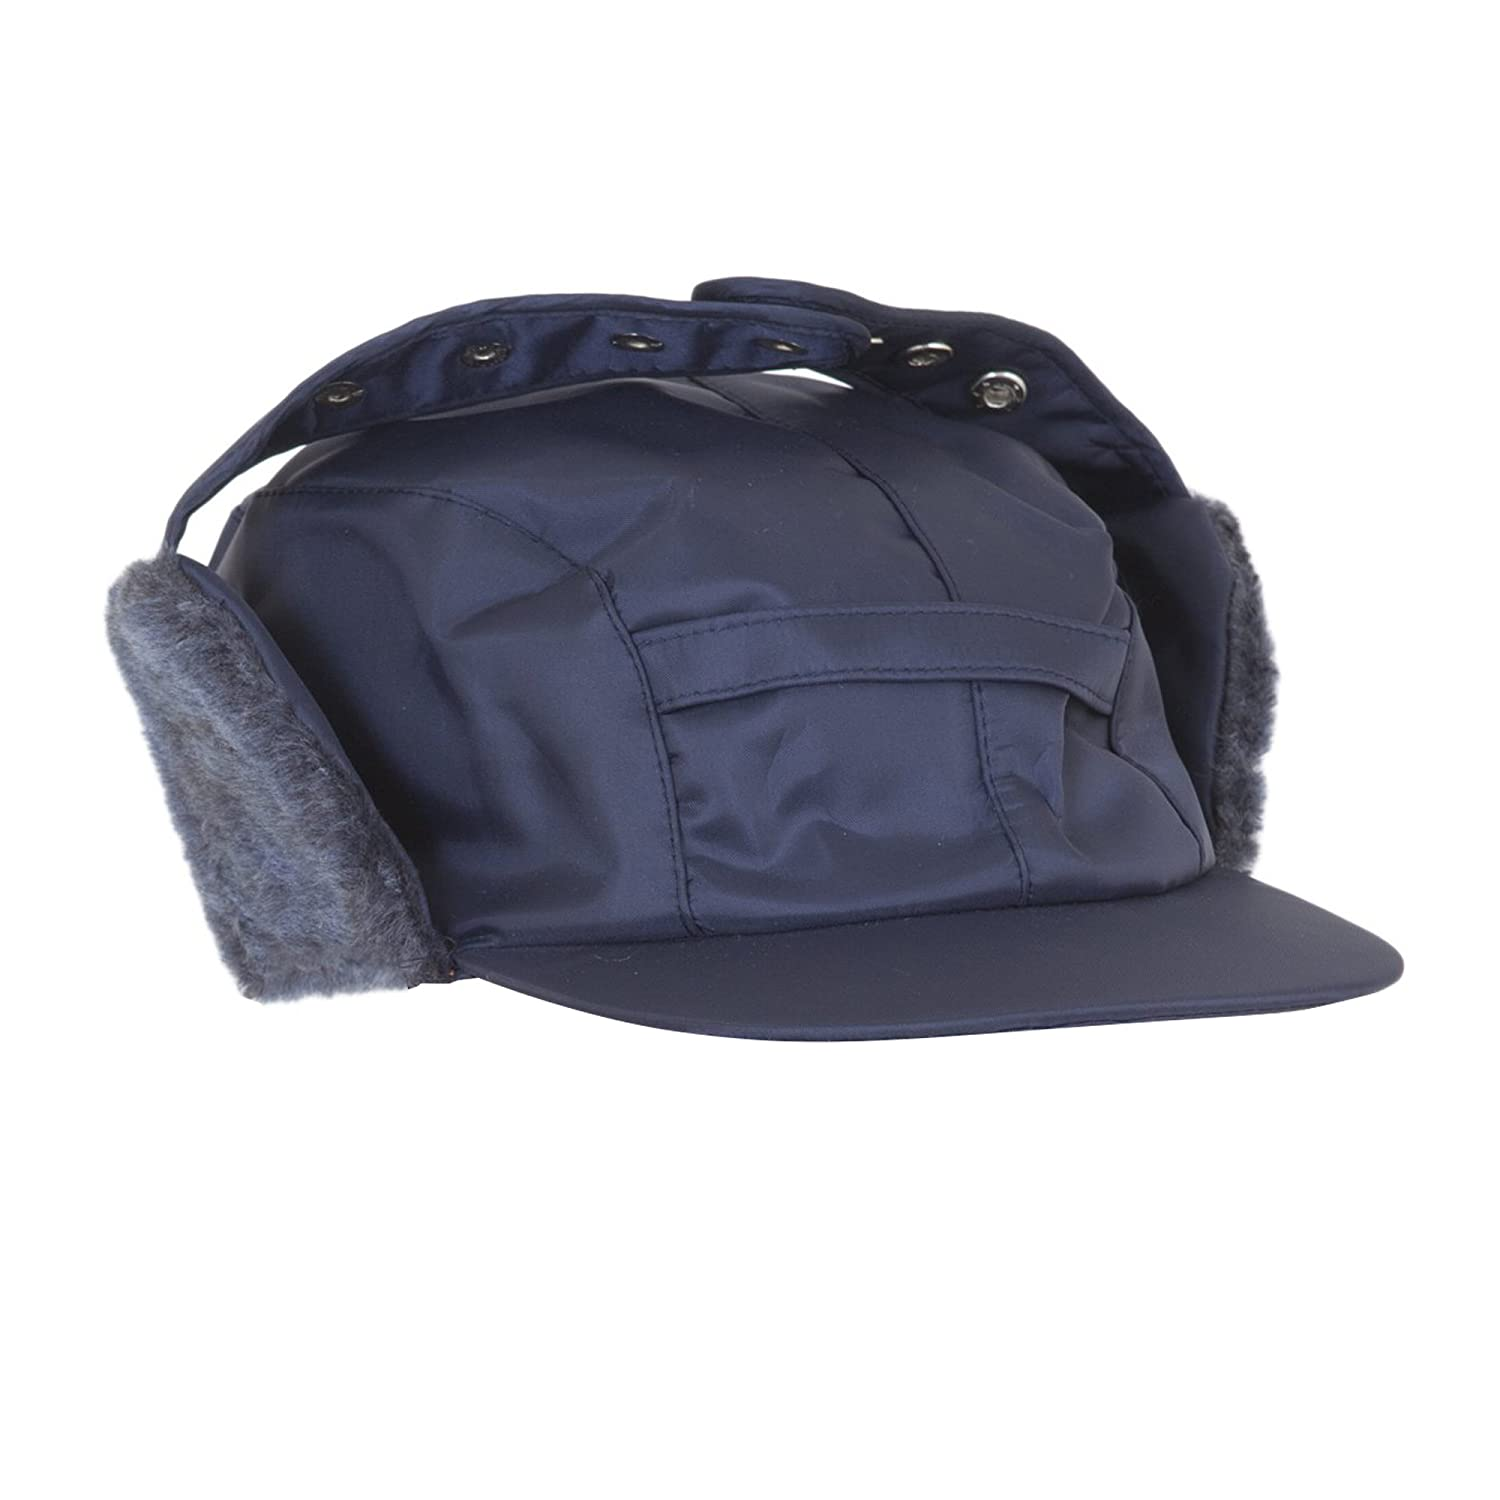 Mens Water Proof Thermal Trapper Hat with Ear Flaps 59cm Navy